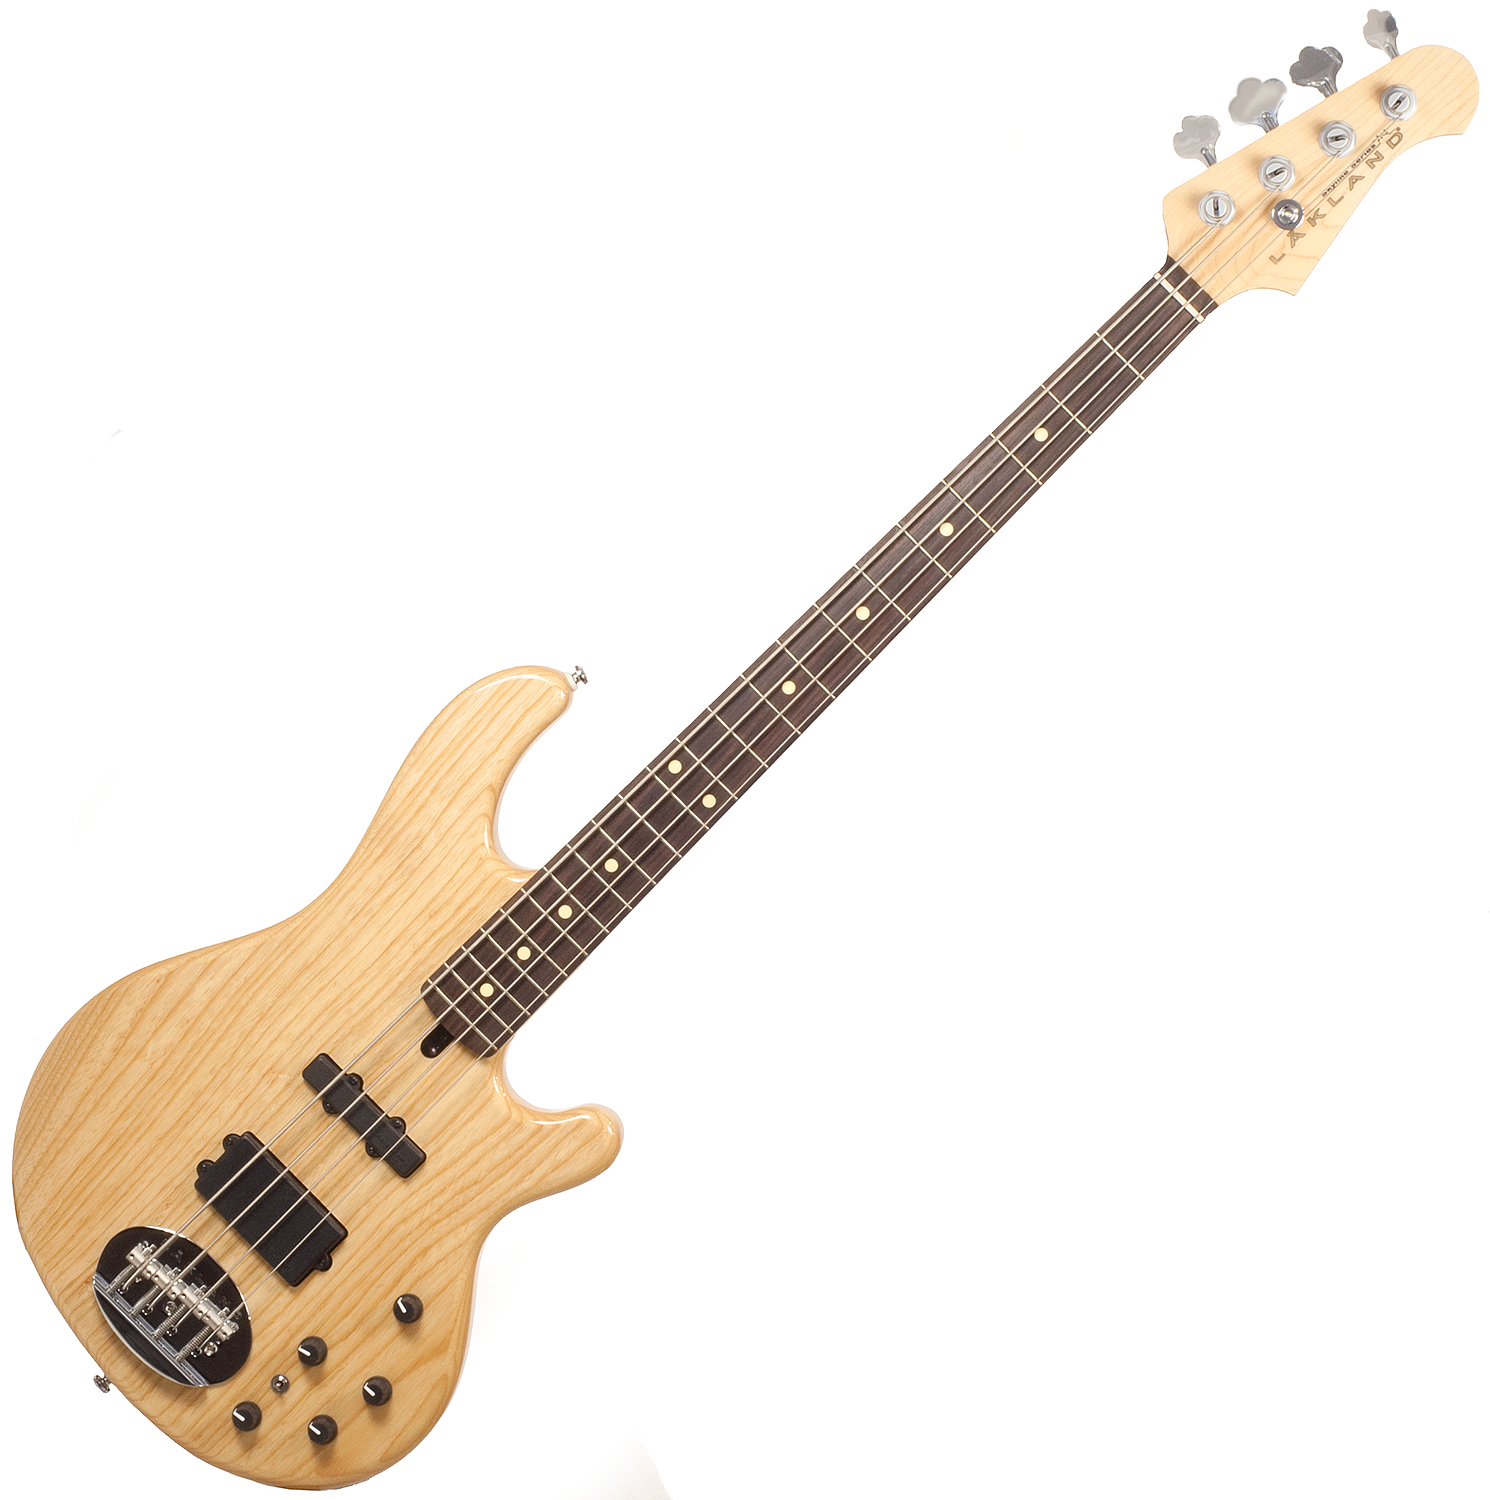 Lakland Skyline S44-02 in Natural  with a Rosewood Fingerboard